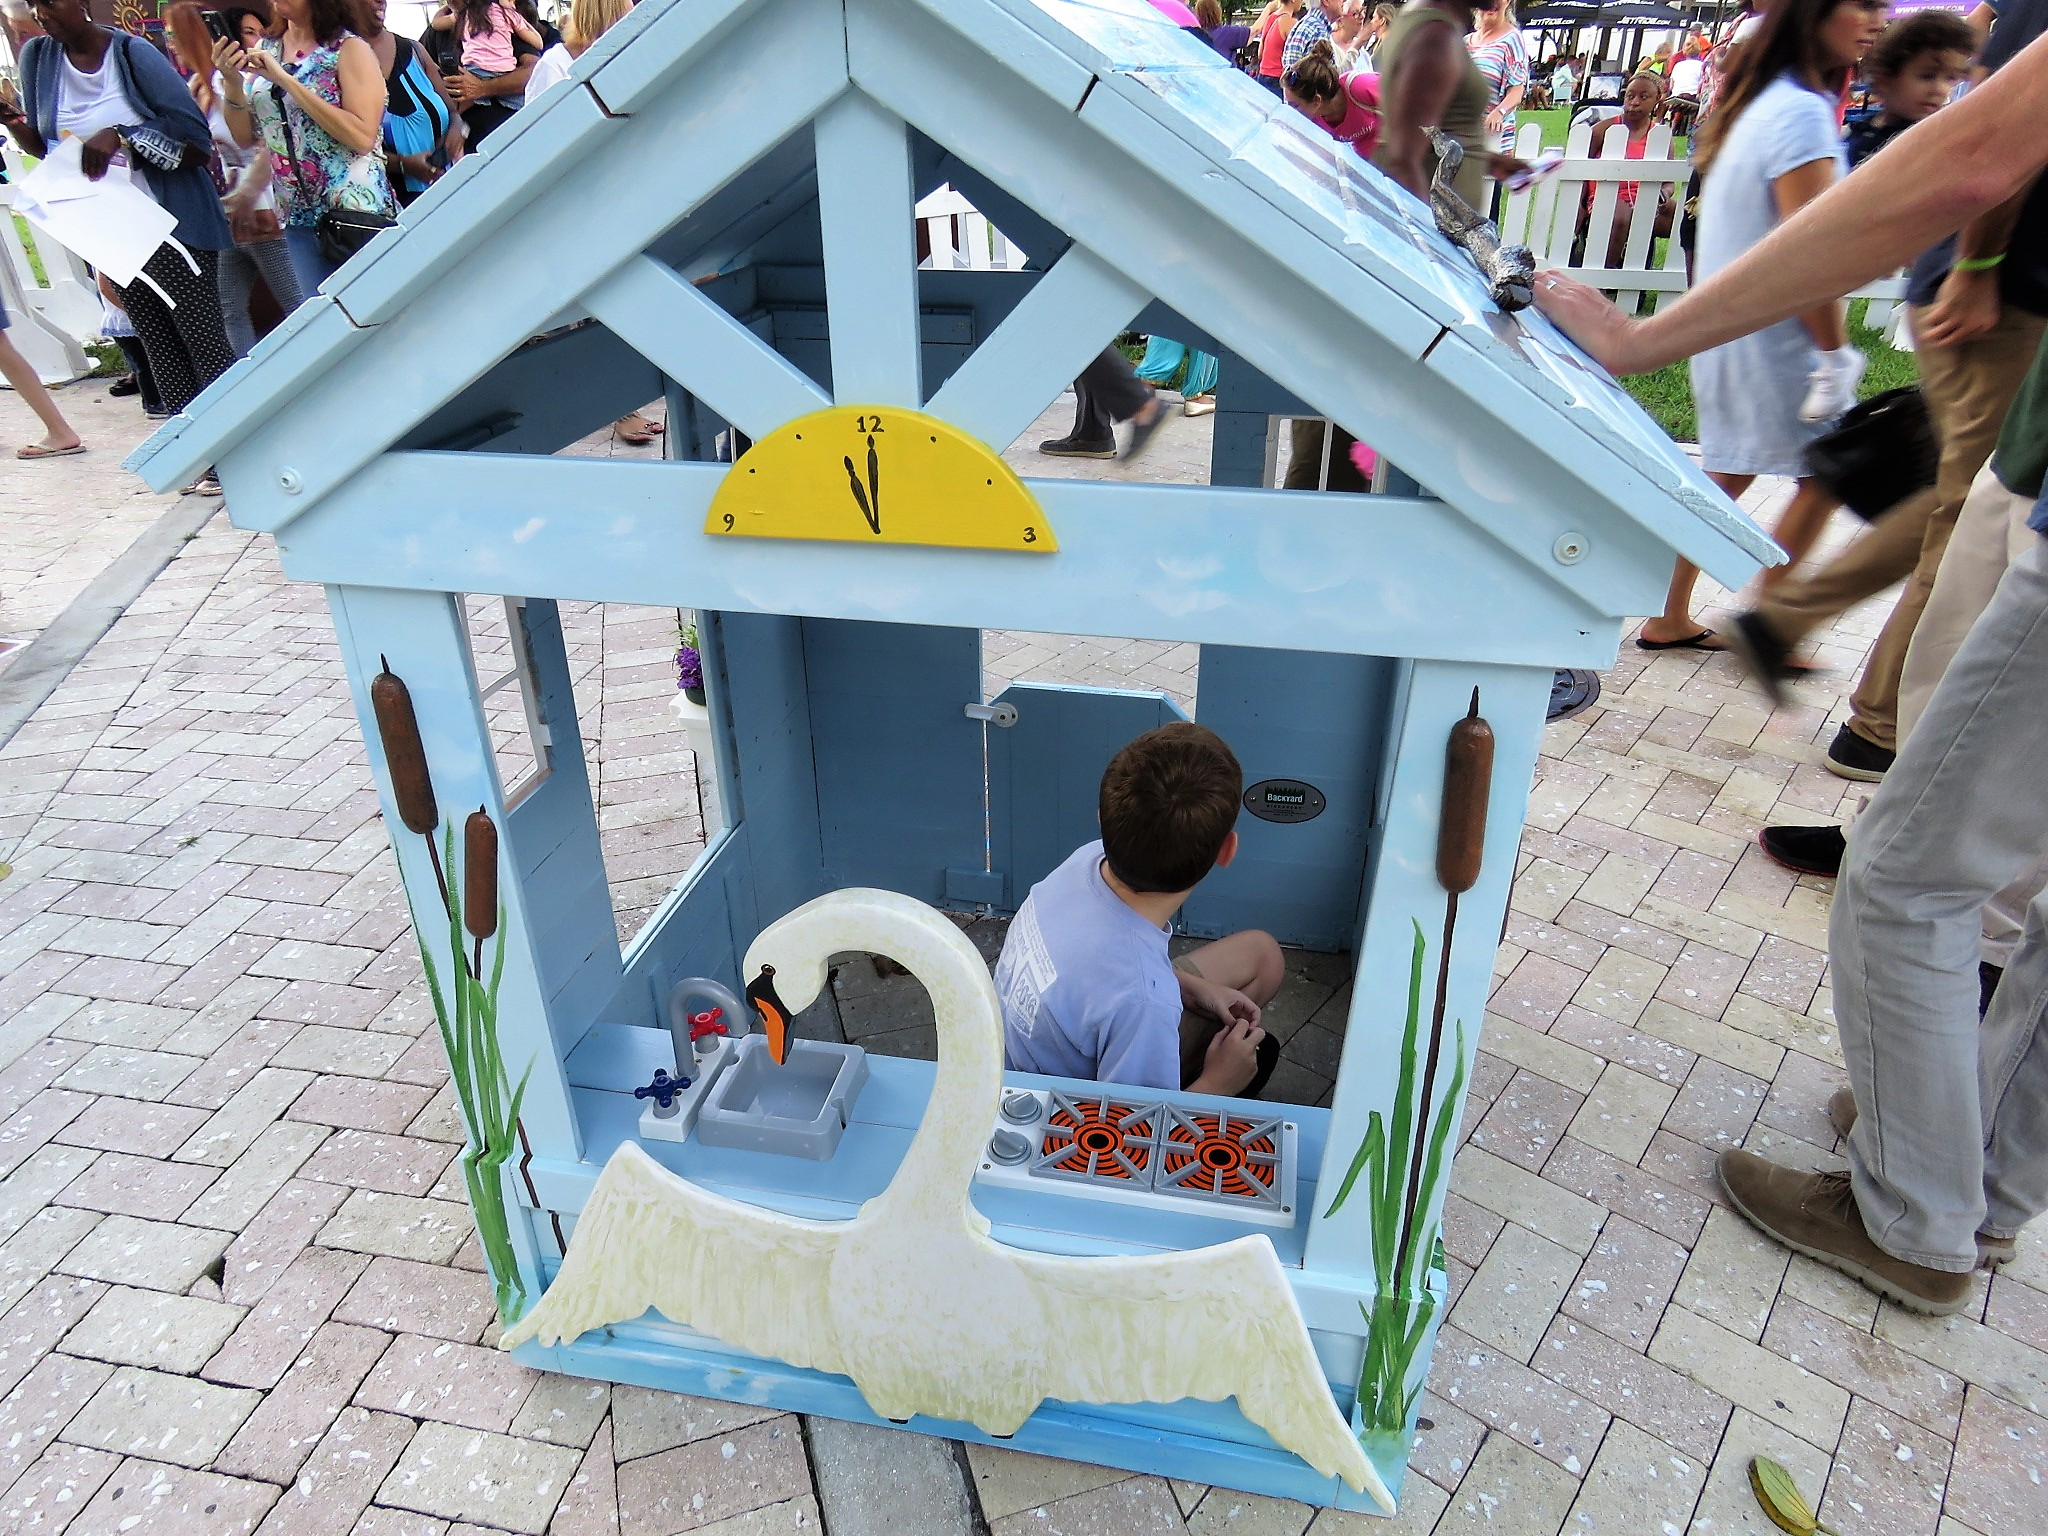 Boy plays in blue playhouse decorating with swan from The Ugly Duckling